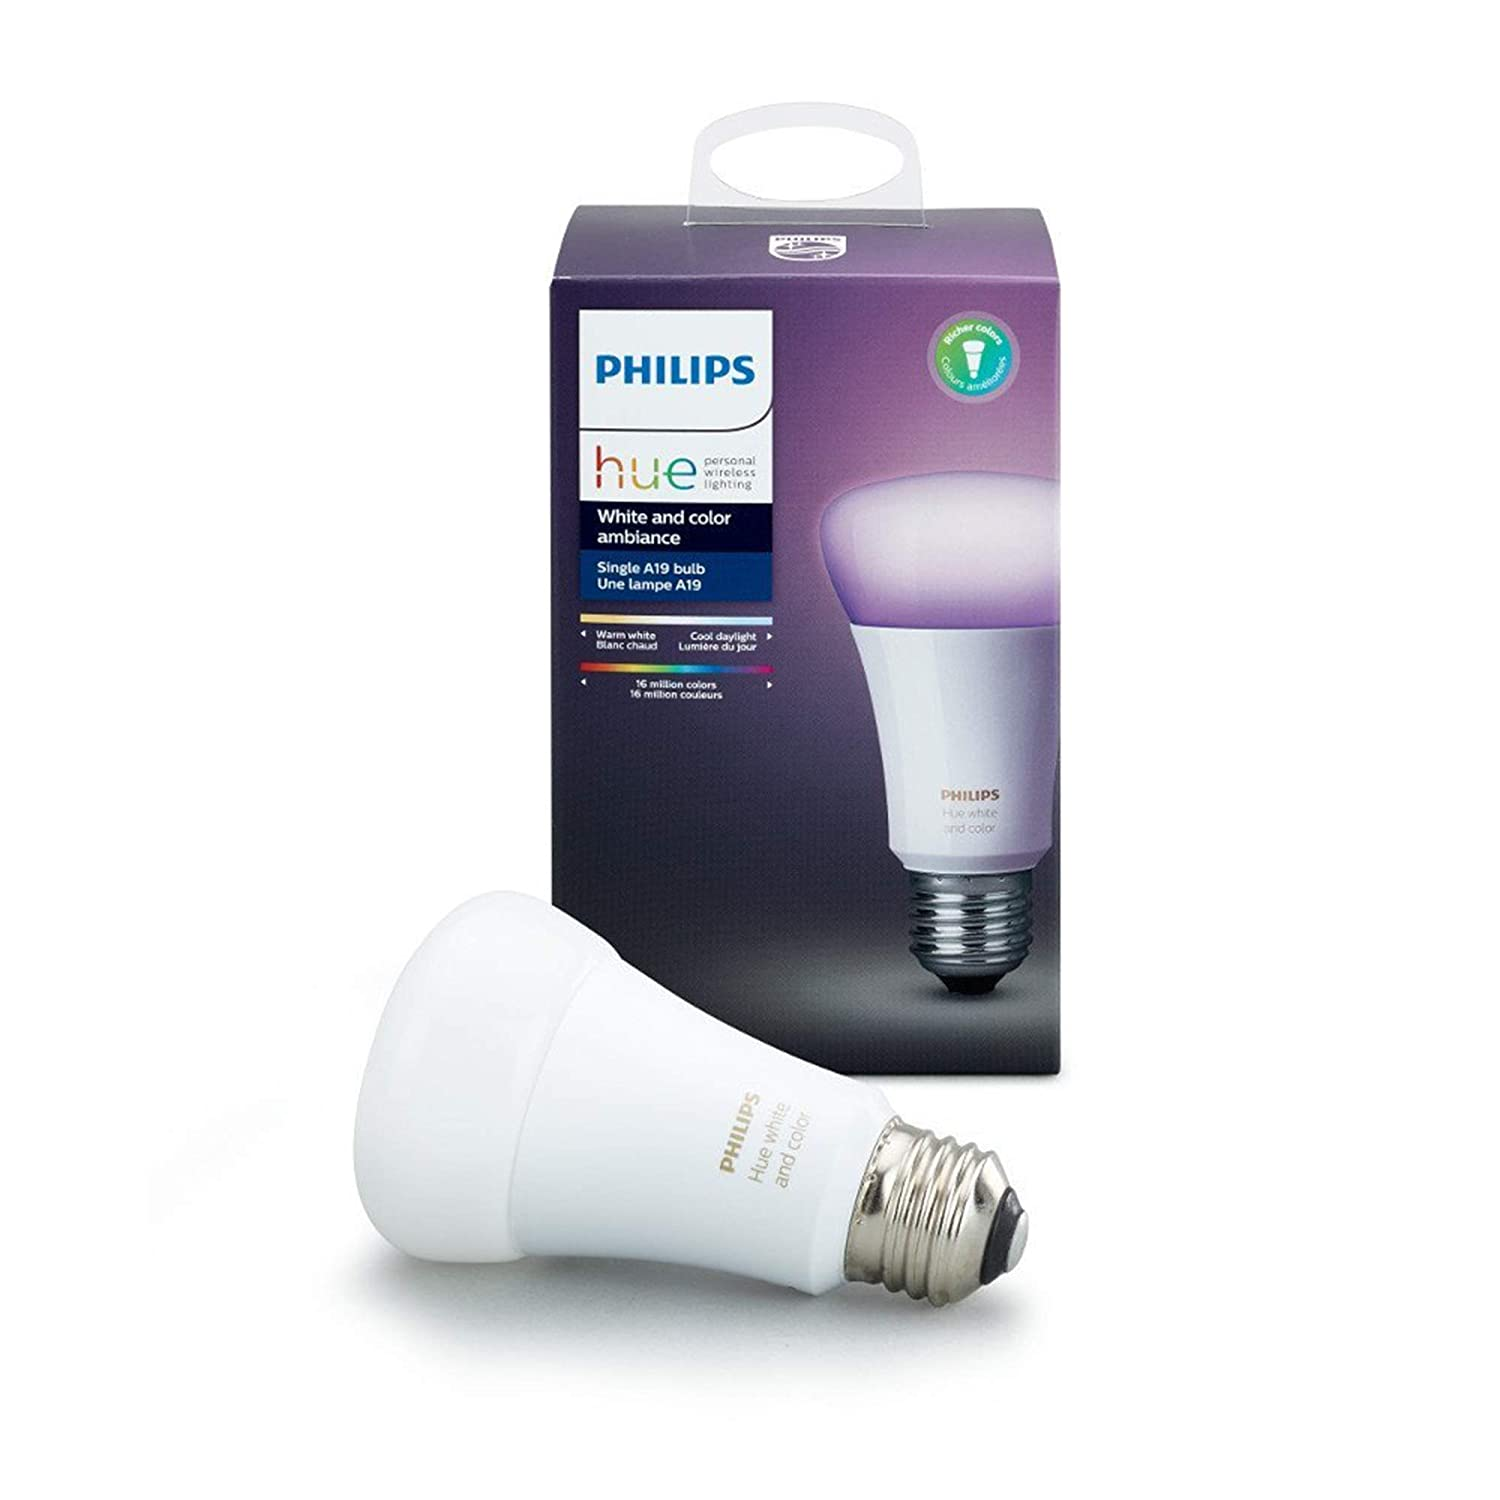 Philips 464487 Hue White And Color Ambiance A19 60w Equivalent Dimmable Led Smart Bulb Compatible With Amazon Alexa Apple Homekit And Google